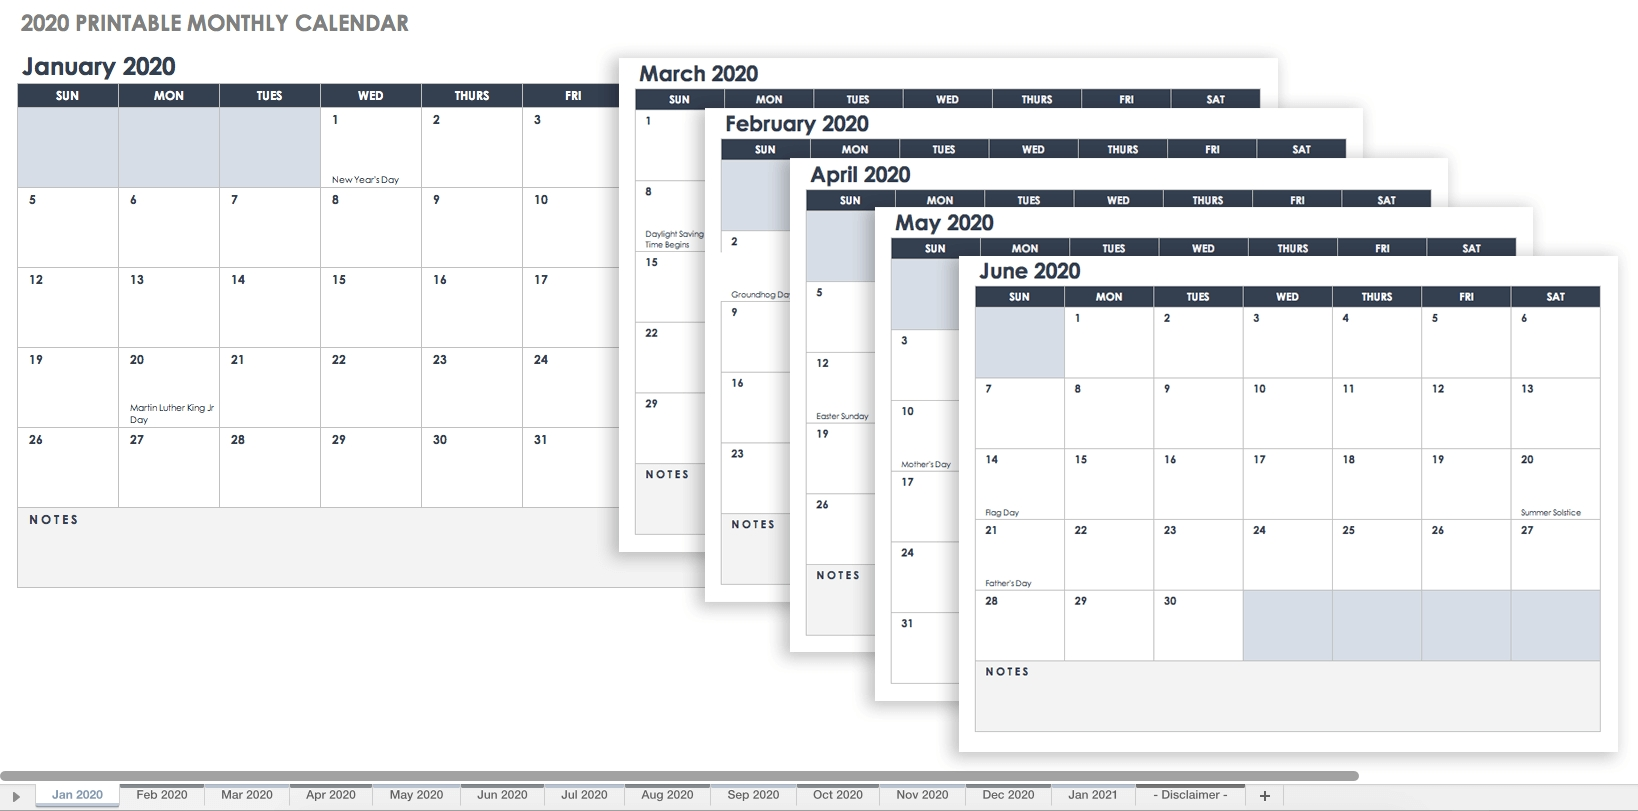 Free Blank Calendar Templates - Smartsheet for Printable Month To Month Clalanders Wityh Lines  2019/2020